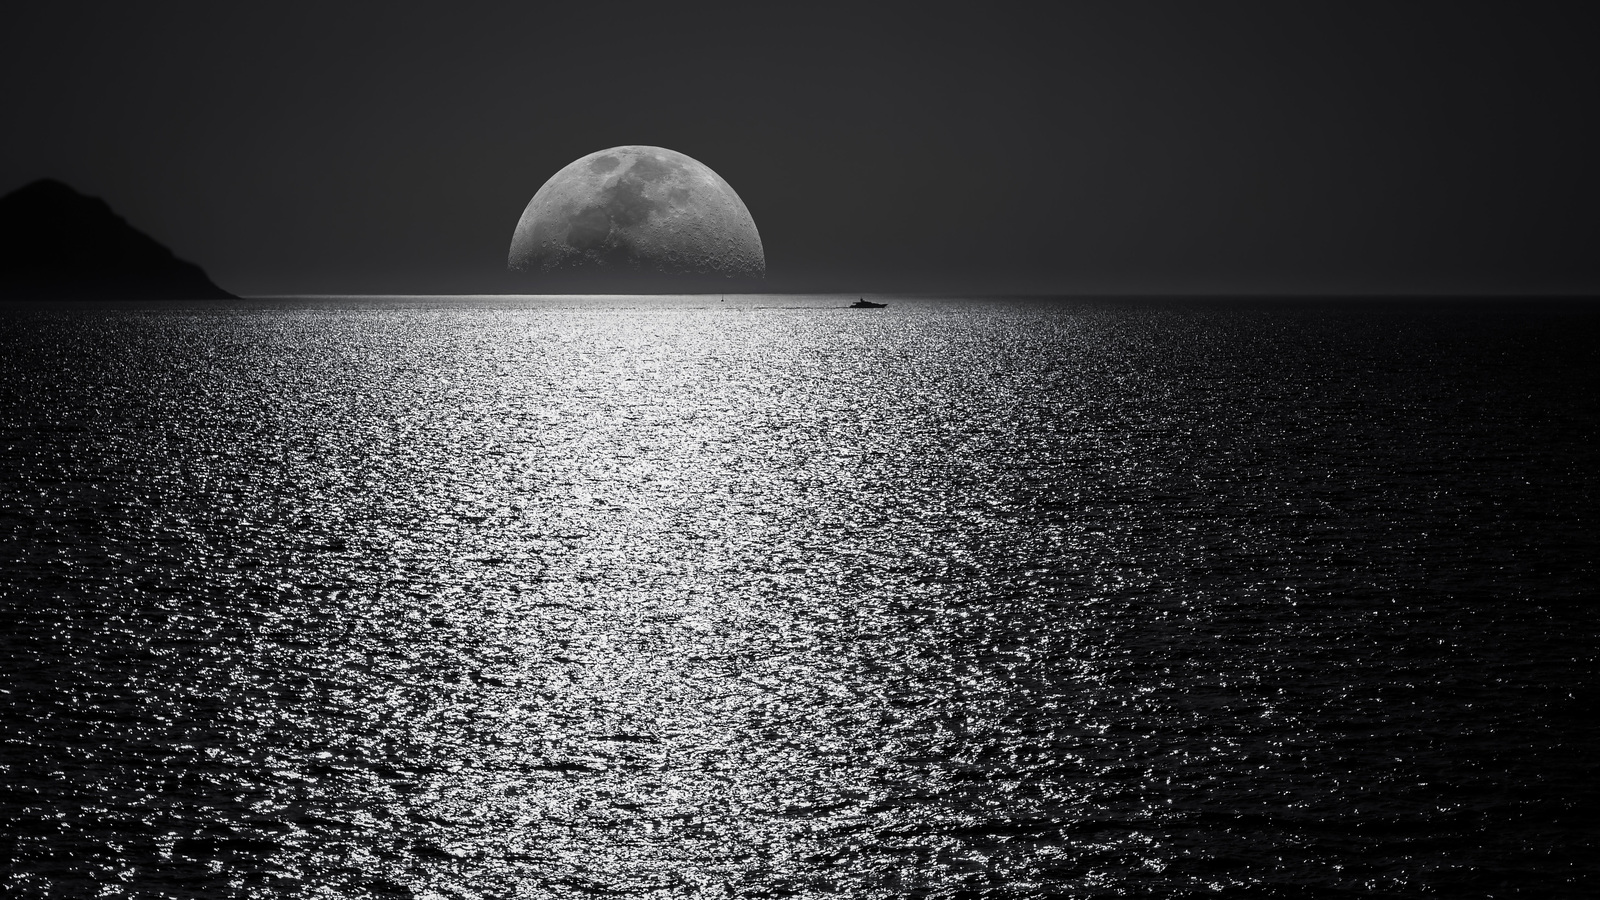 white-black-moon-evening-night-time-seascape-5k-d1.jpg